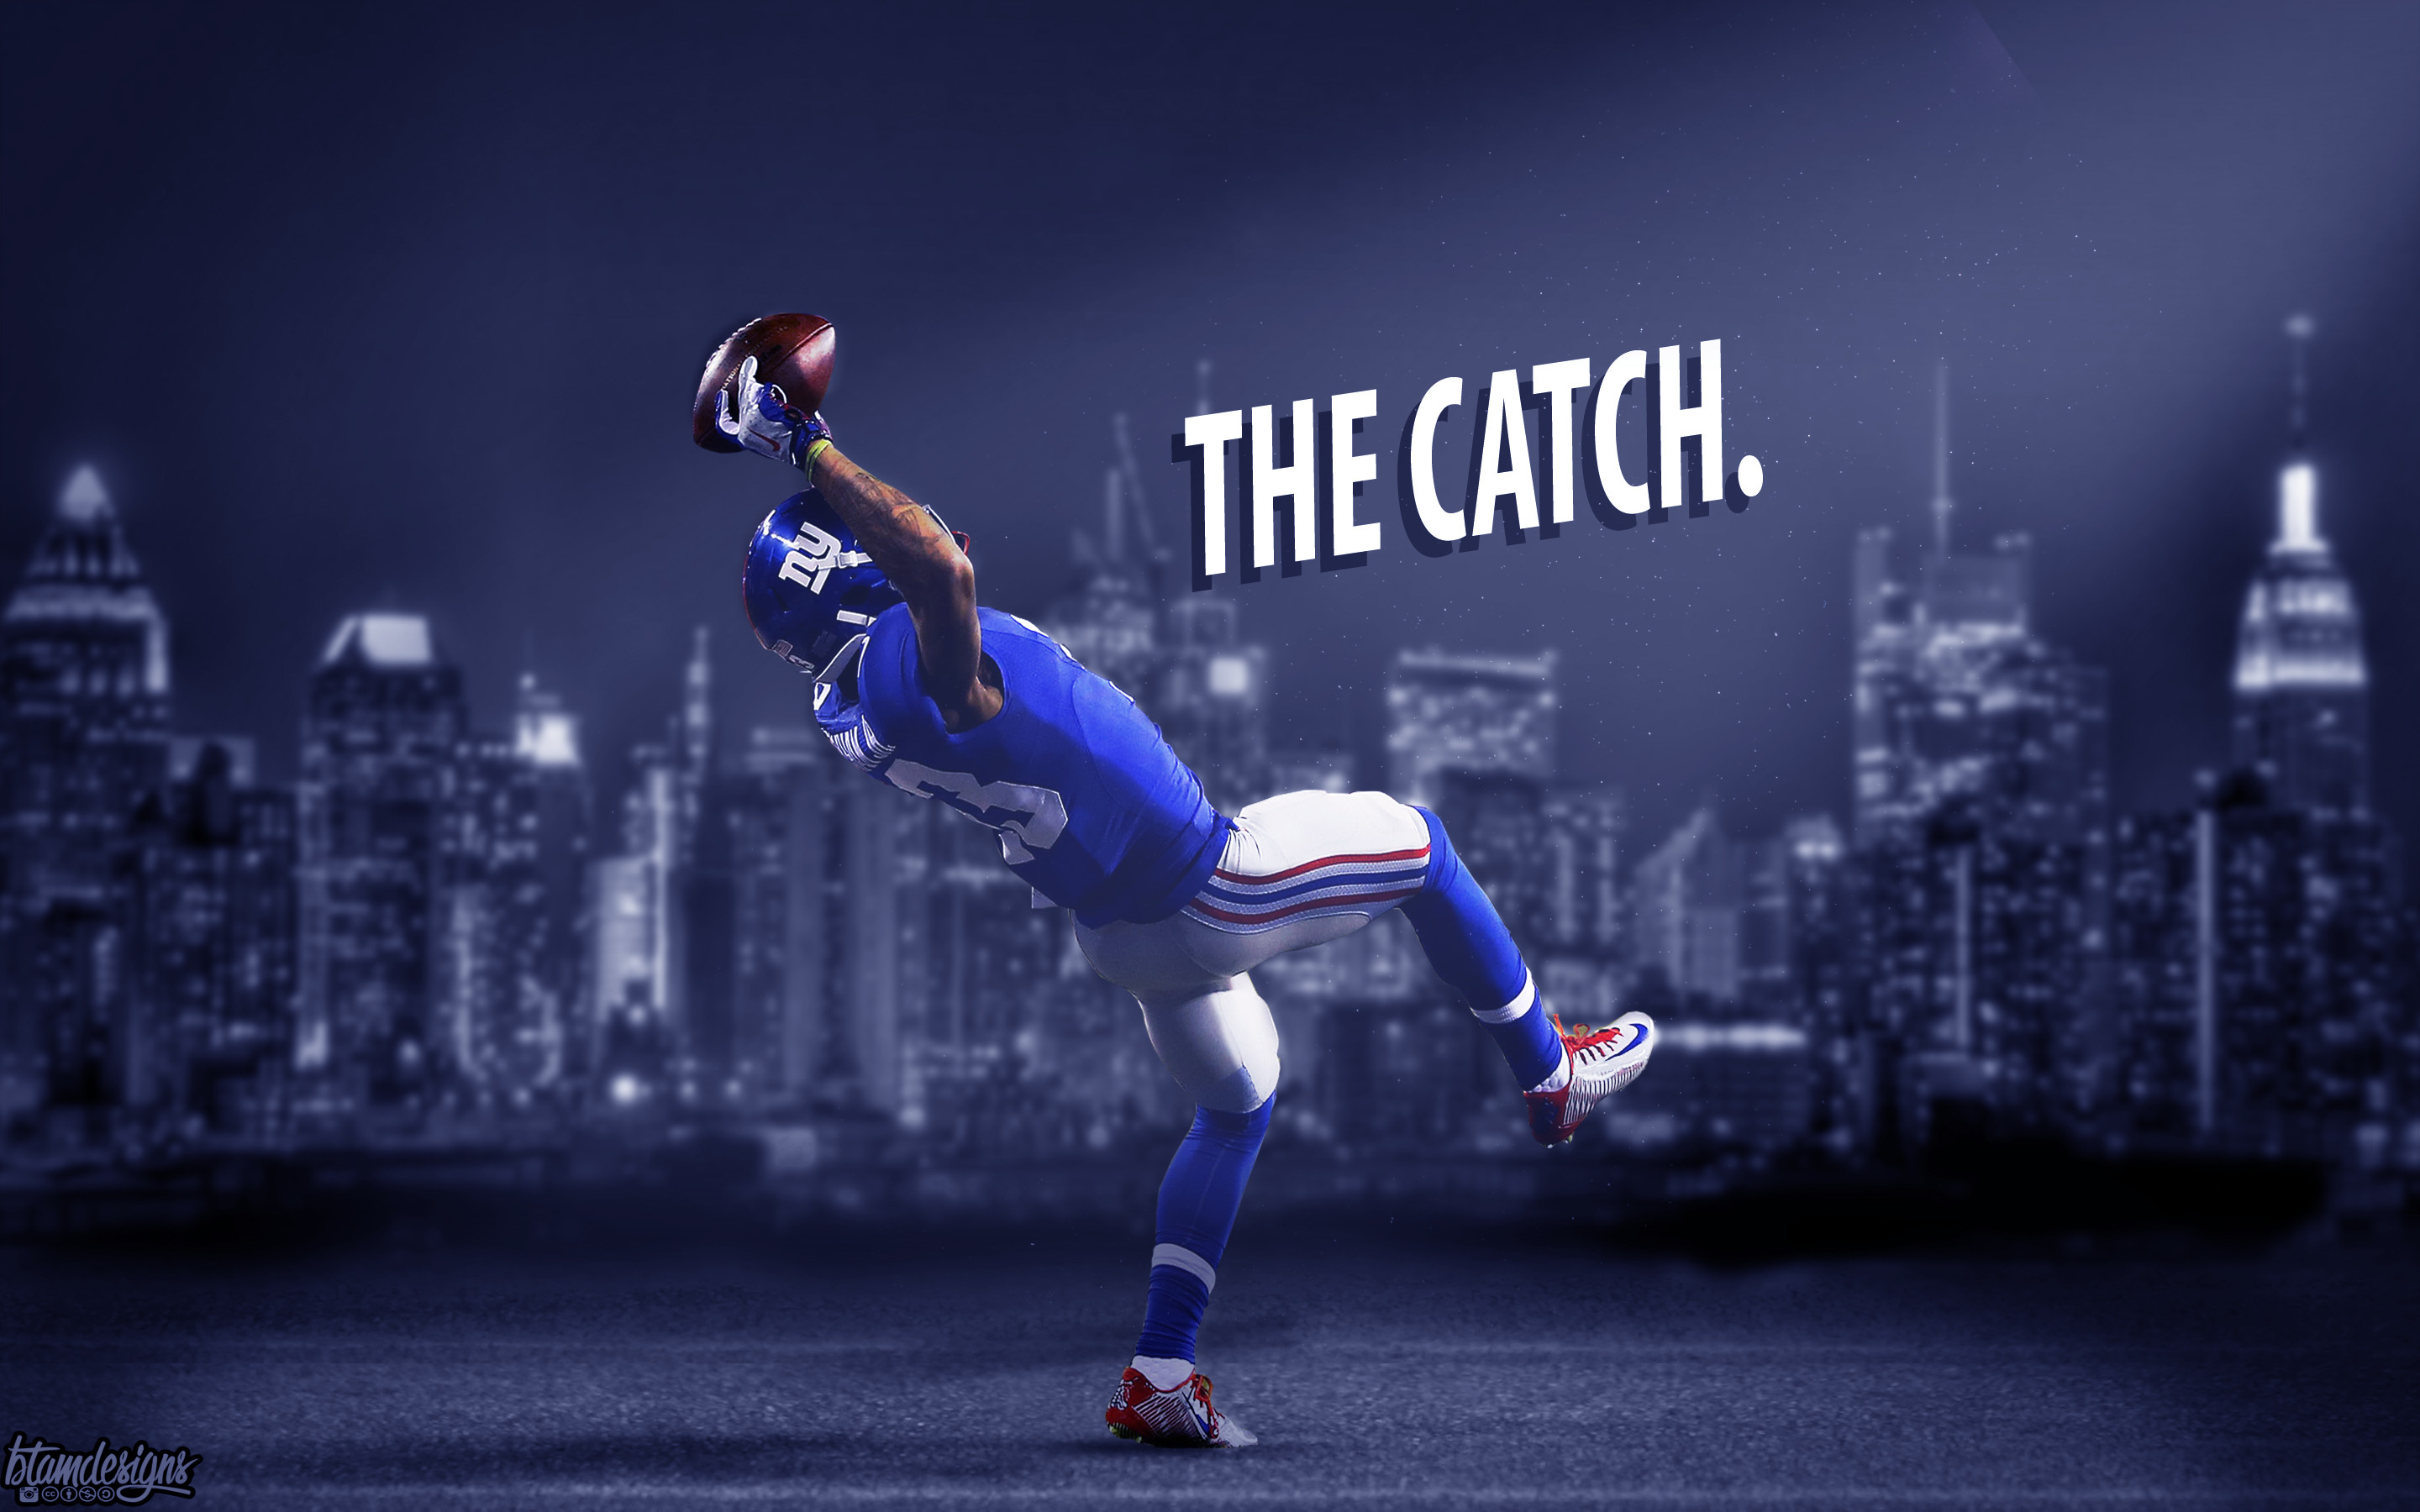 Odell Beckham Jr Catch Wallpaper 69 Images